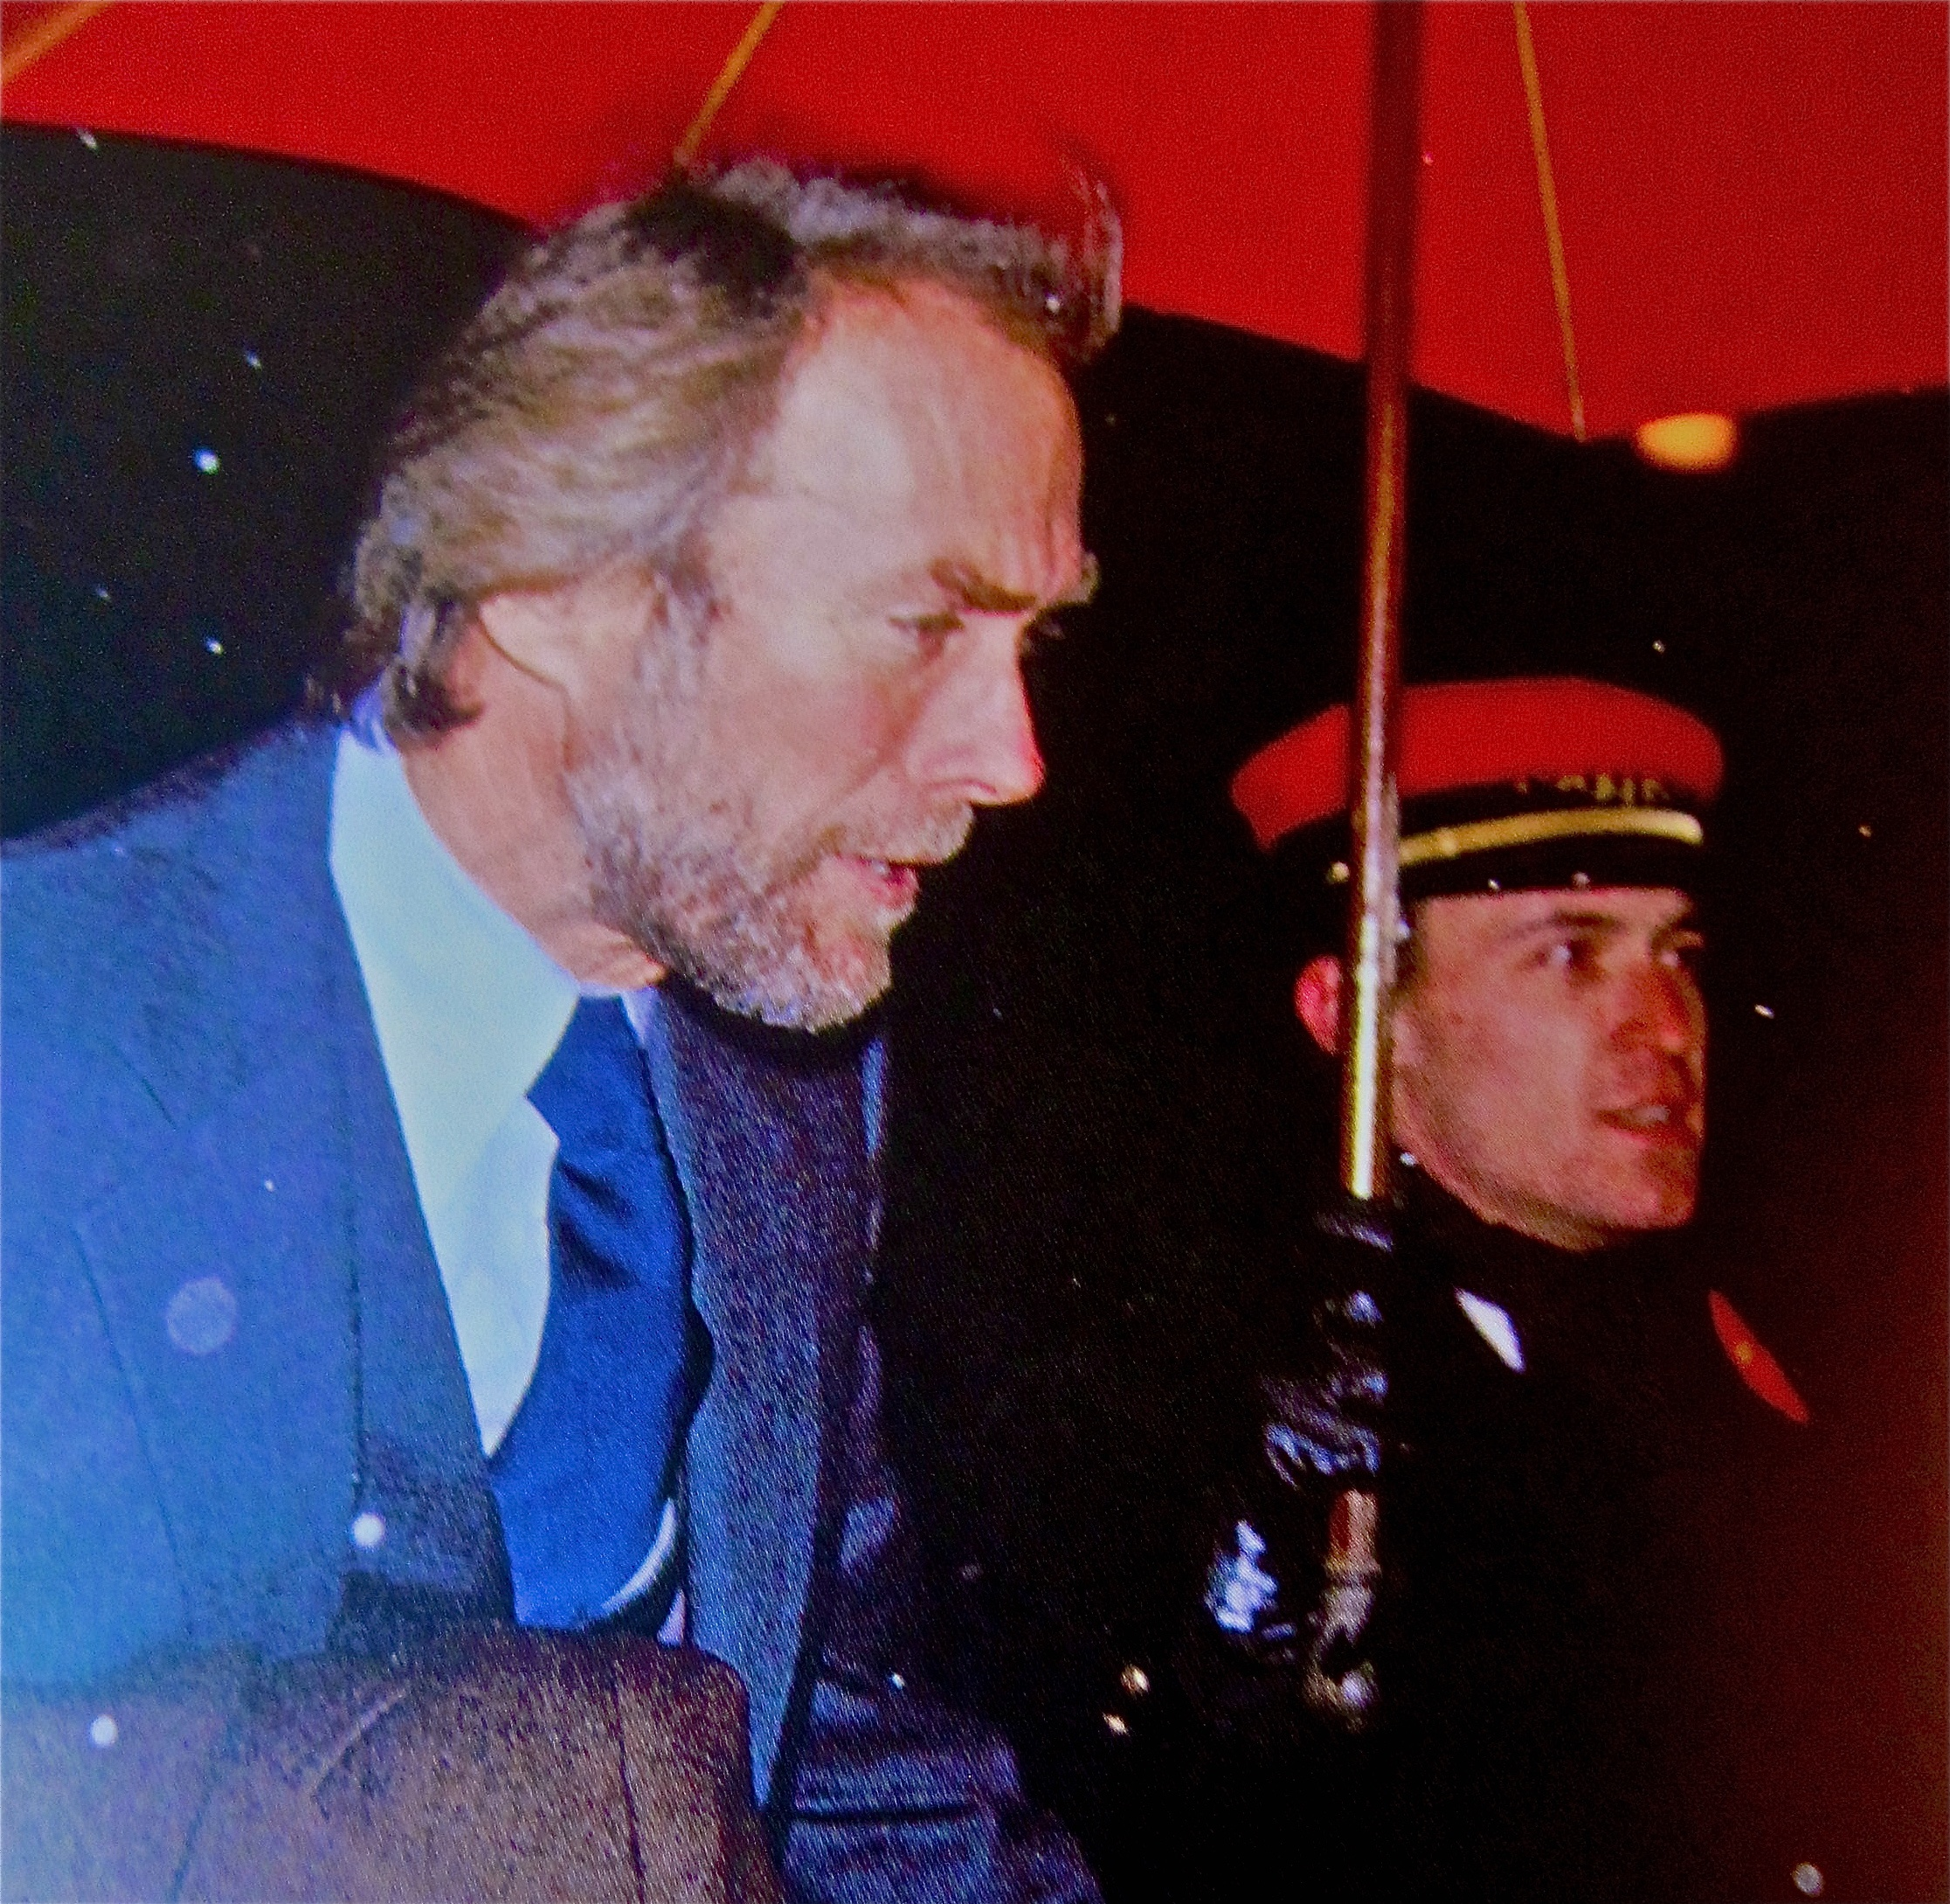 Clint Eastwood in Europe